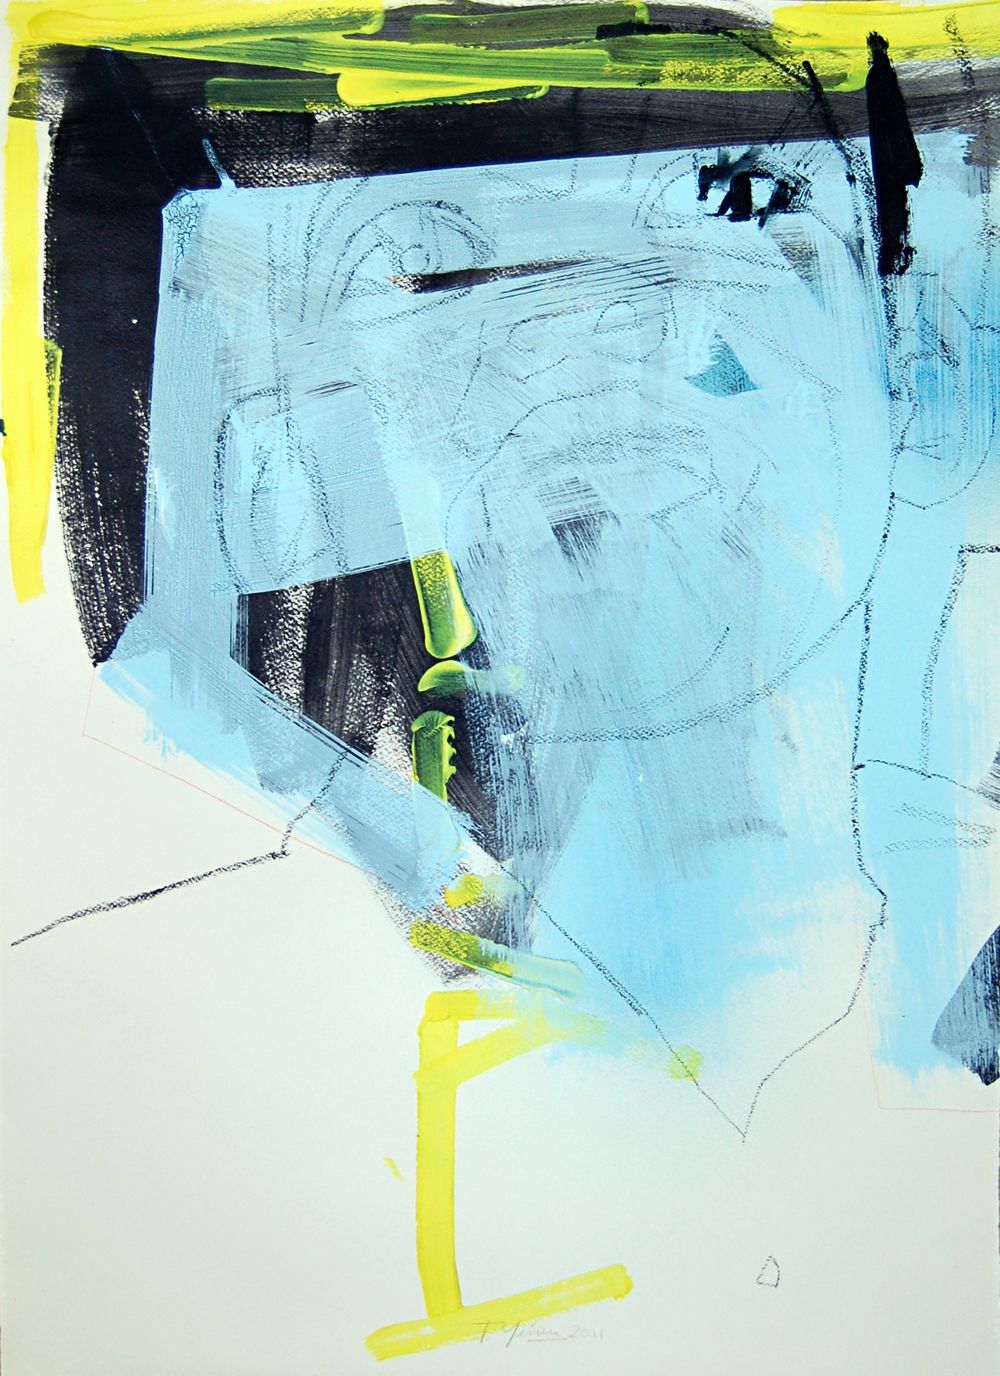 Francisco Nunez, Joselier (Versioń), Mixed media on paper, 52cm x 75cm